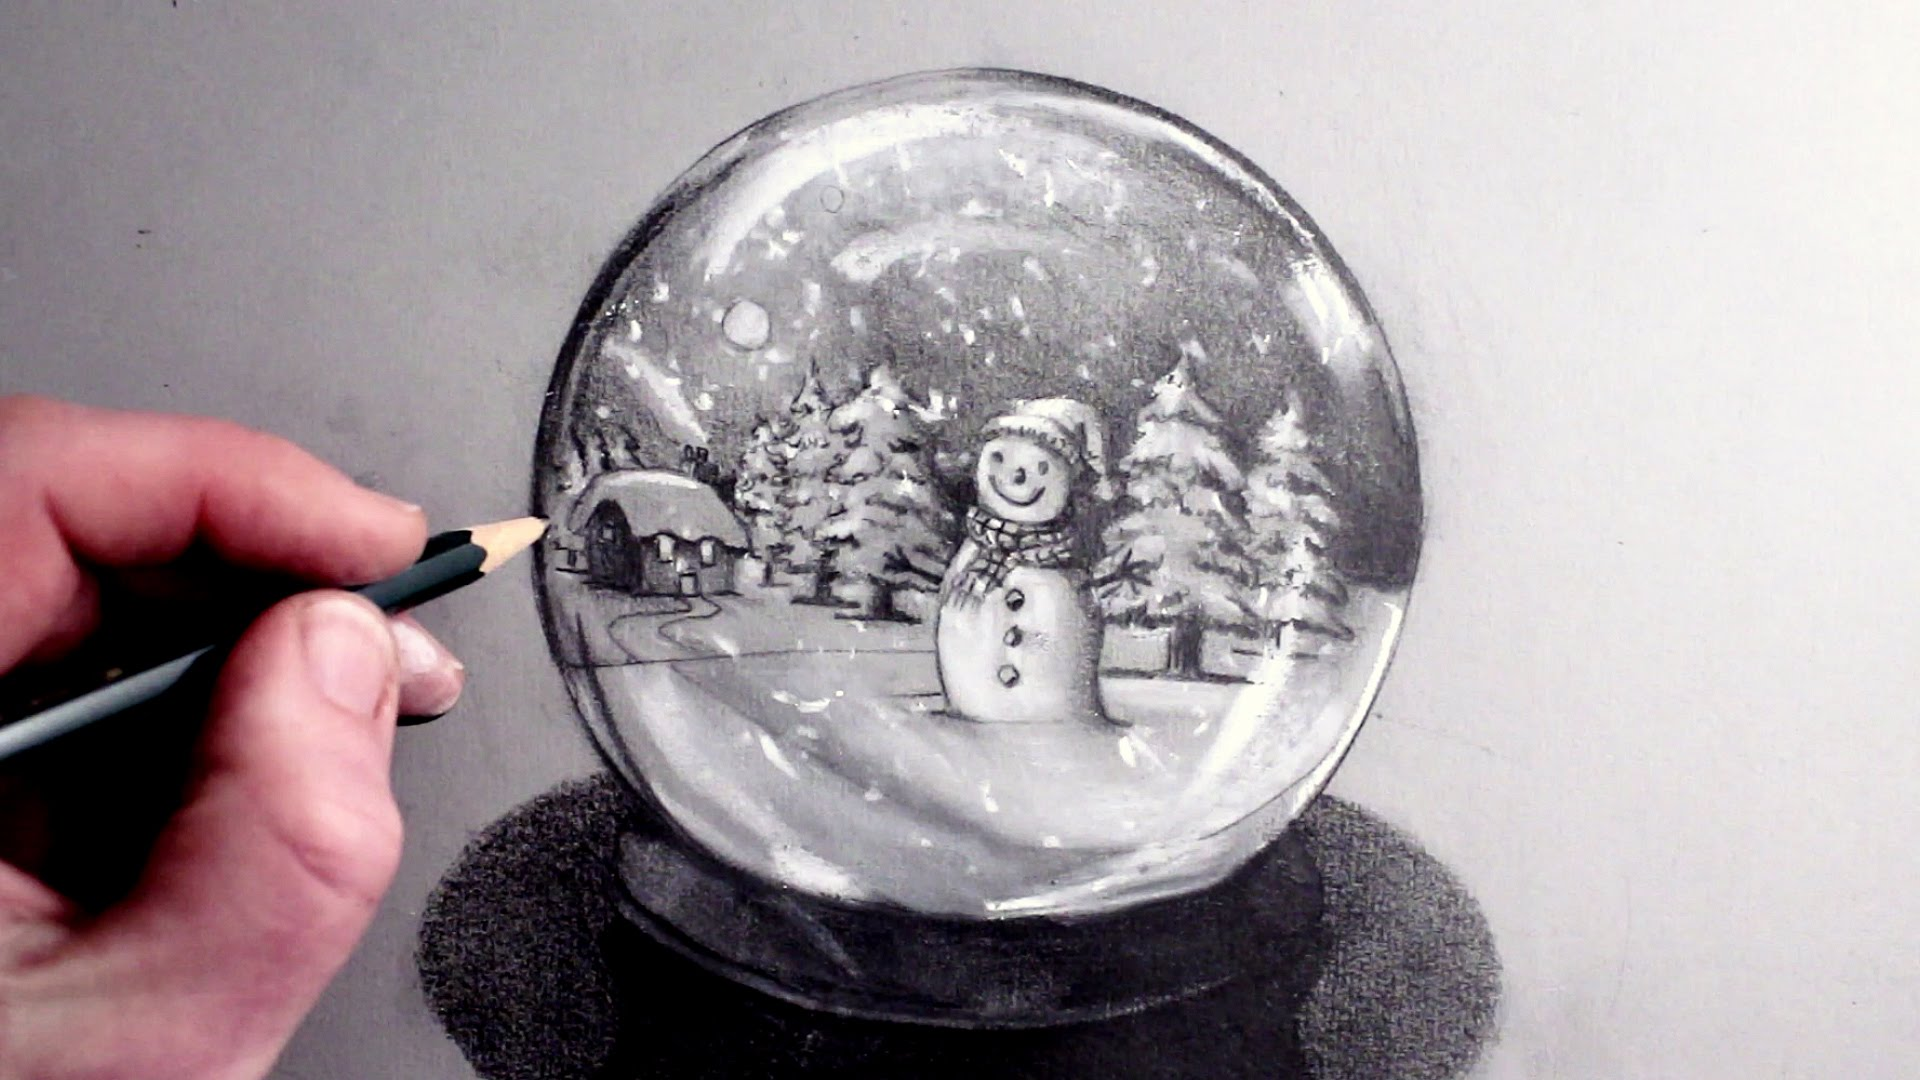 How to Draw a Snowman in a Snow Globe - YouTube